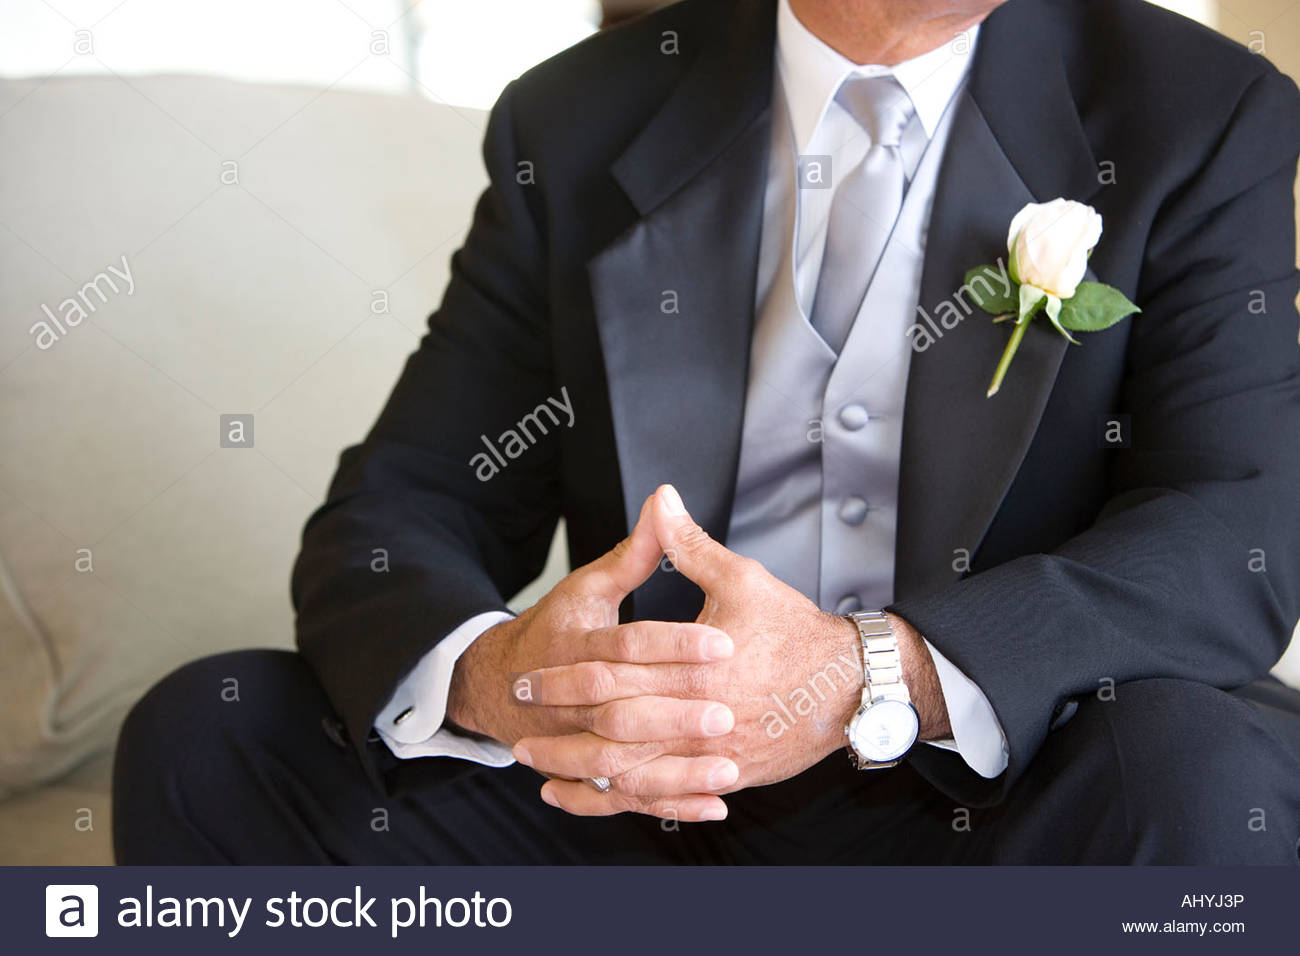 Senior groom, in formalwear, sitting on chair at wedding, thumbs pressed together, mid-section - Stock Image